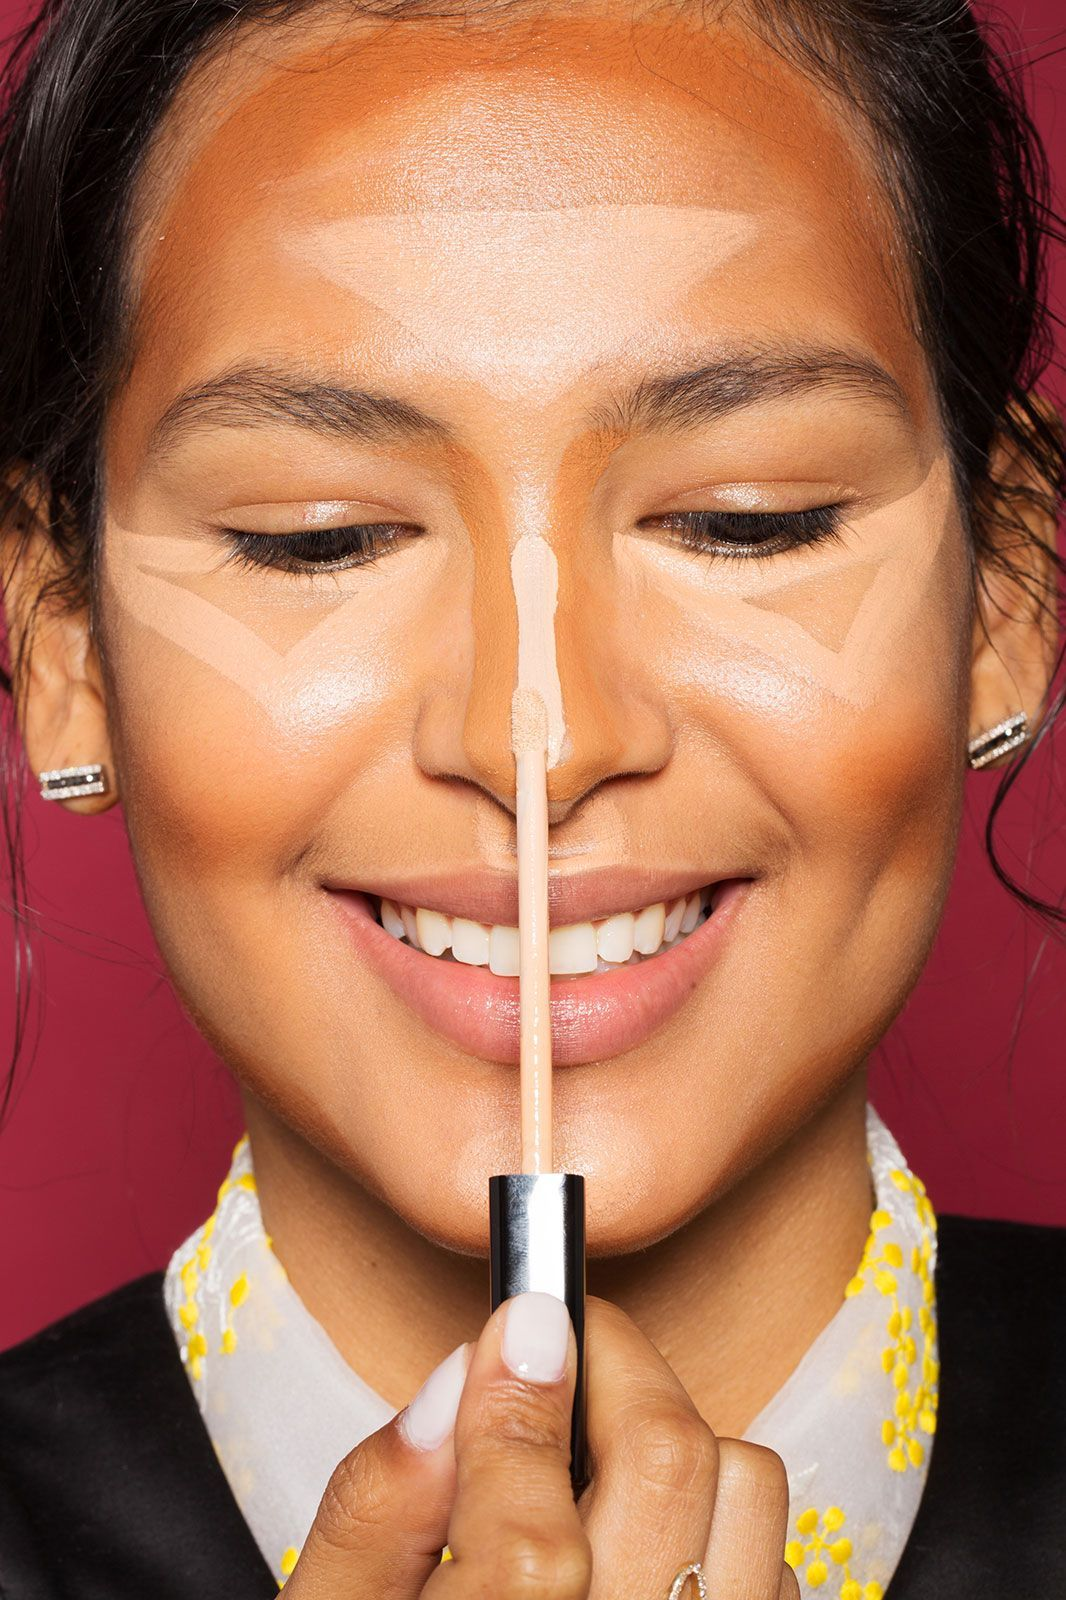 This contouring hack will save you so much money makeup hair one of the best explained and easiest step by step contouring tutorials ive seen made very simple to understand and with versatile products to fit baditri Gallery